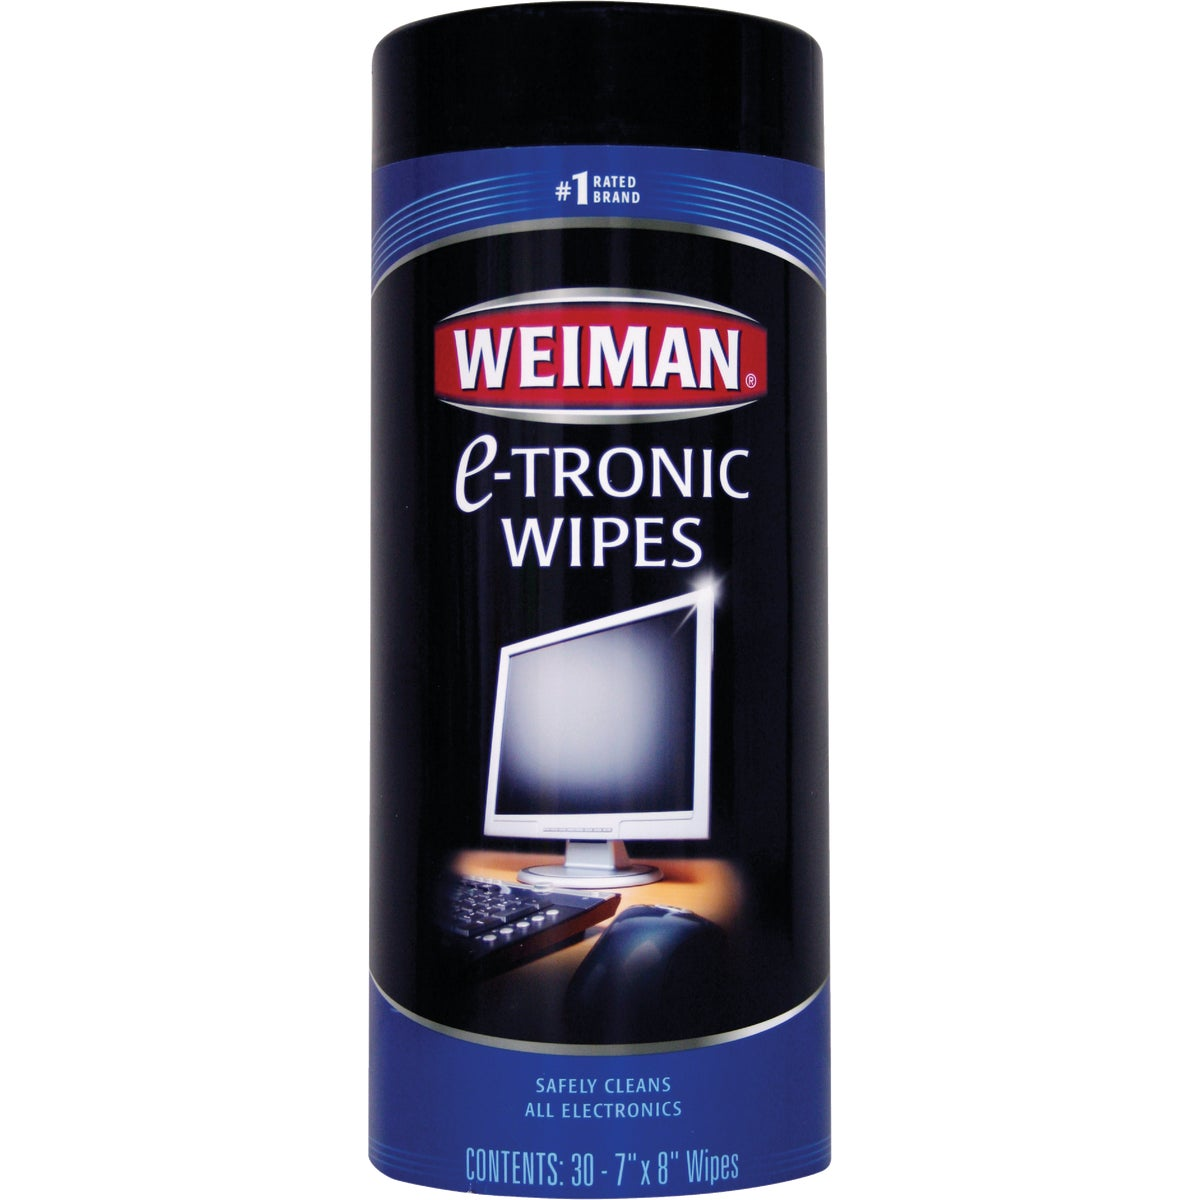 ELECTRONIC MEDIA WIPES - 93 by Weiman Products Llc